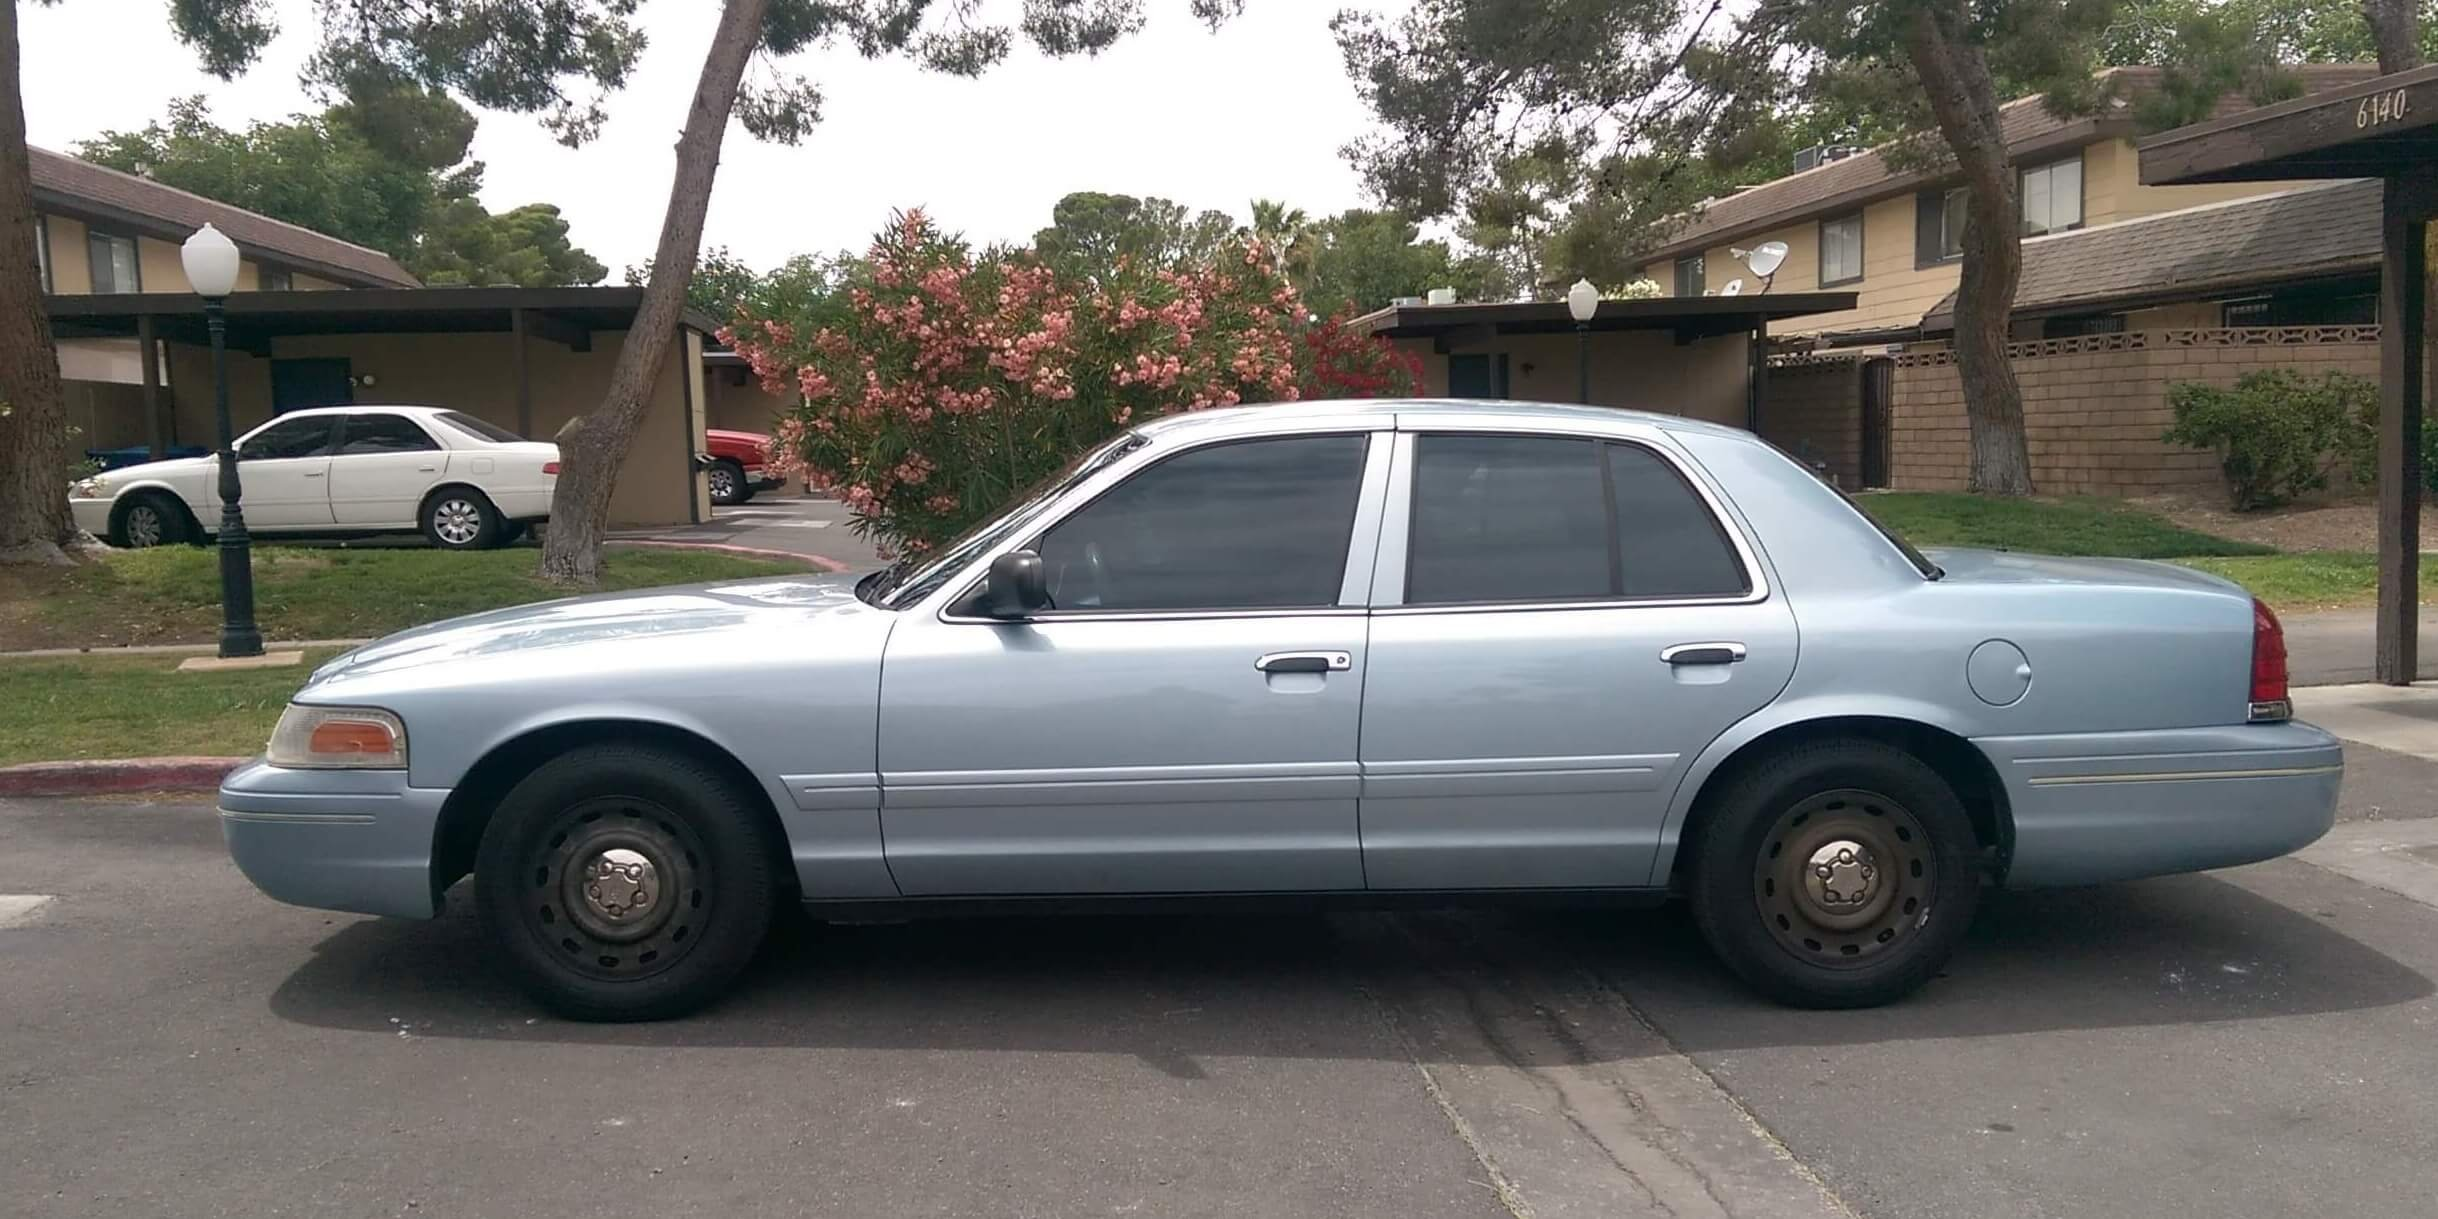 Tracy's 2004 Ford Crown Victoria - Holley My Garage